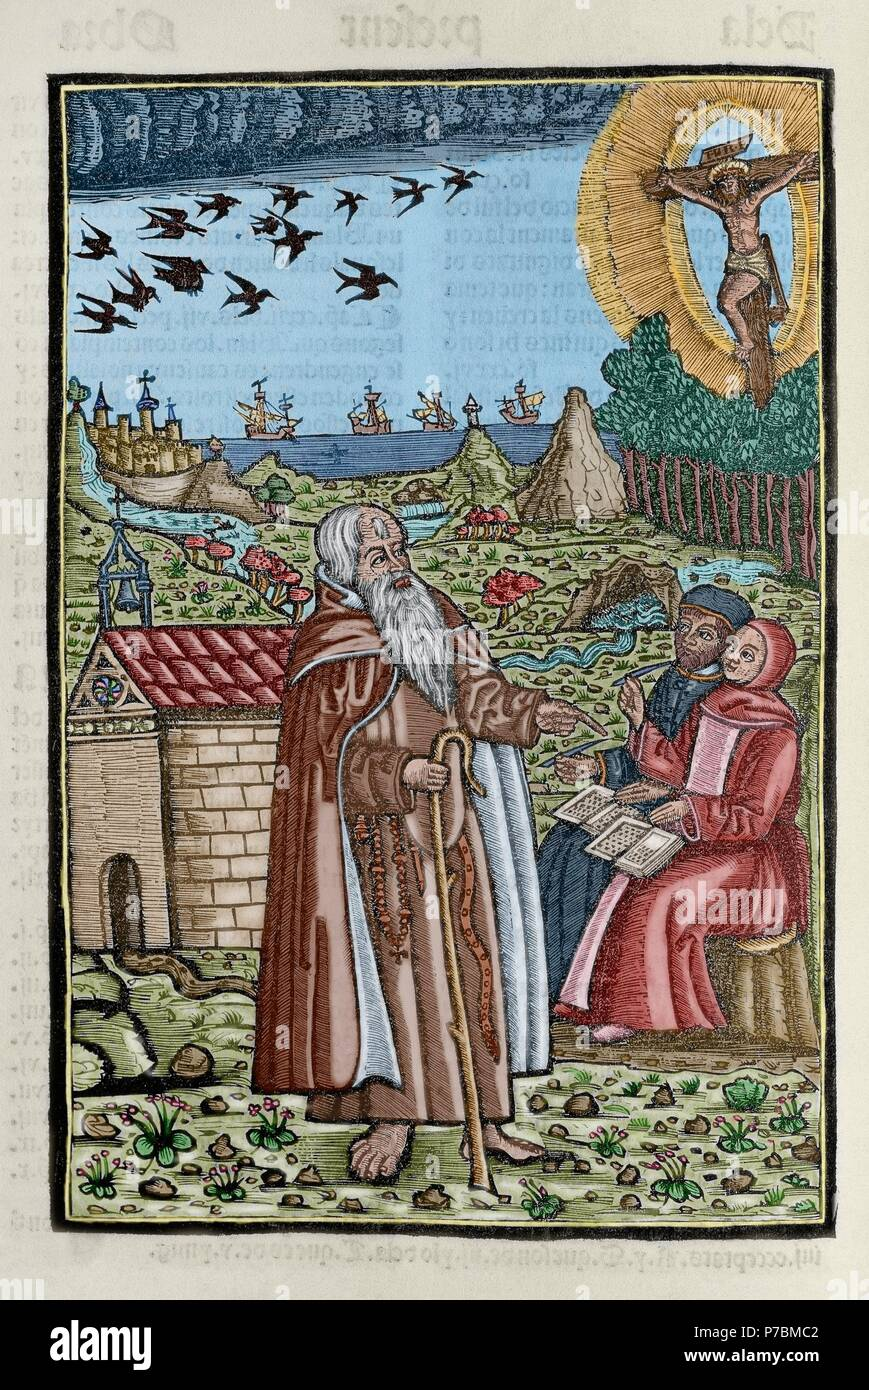 Ramon Llull (1235-1316). Spanish writer and philosopher. Blanquerna, ca. 1293. Engraving depicting Ramon Llull preaching or talking to two people or disciples. Colored. - Stock Image